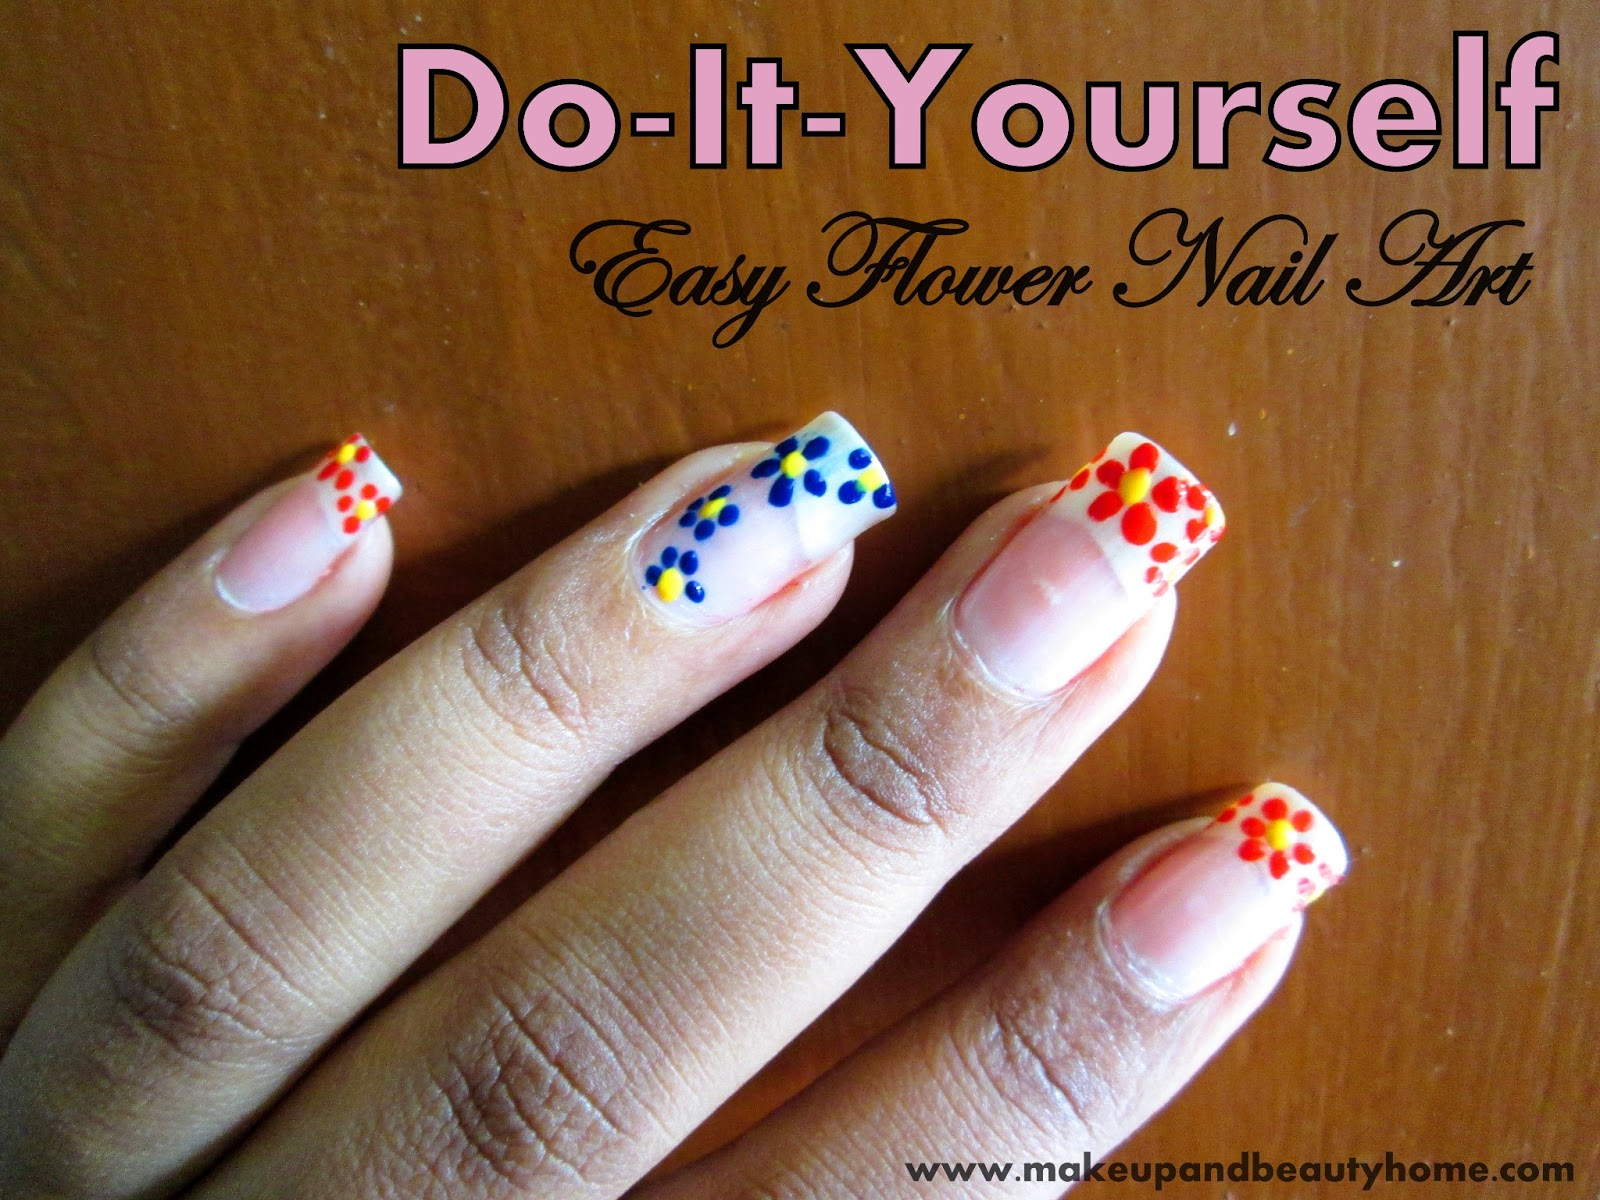 Do It Yourself Easy Flower Nail Art : 6 Easy Steps - MABH Blog